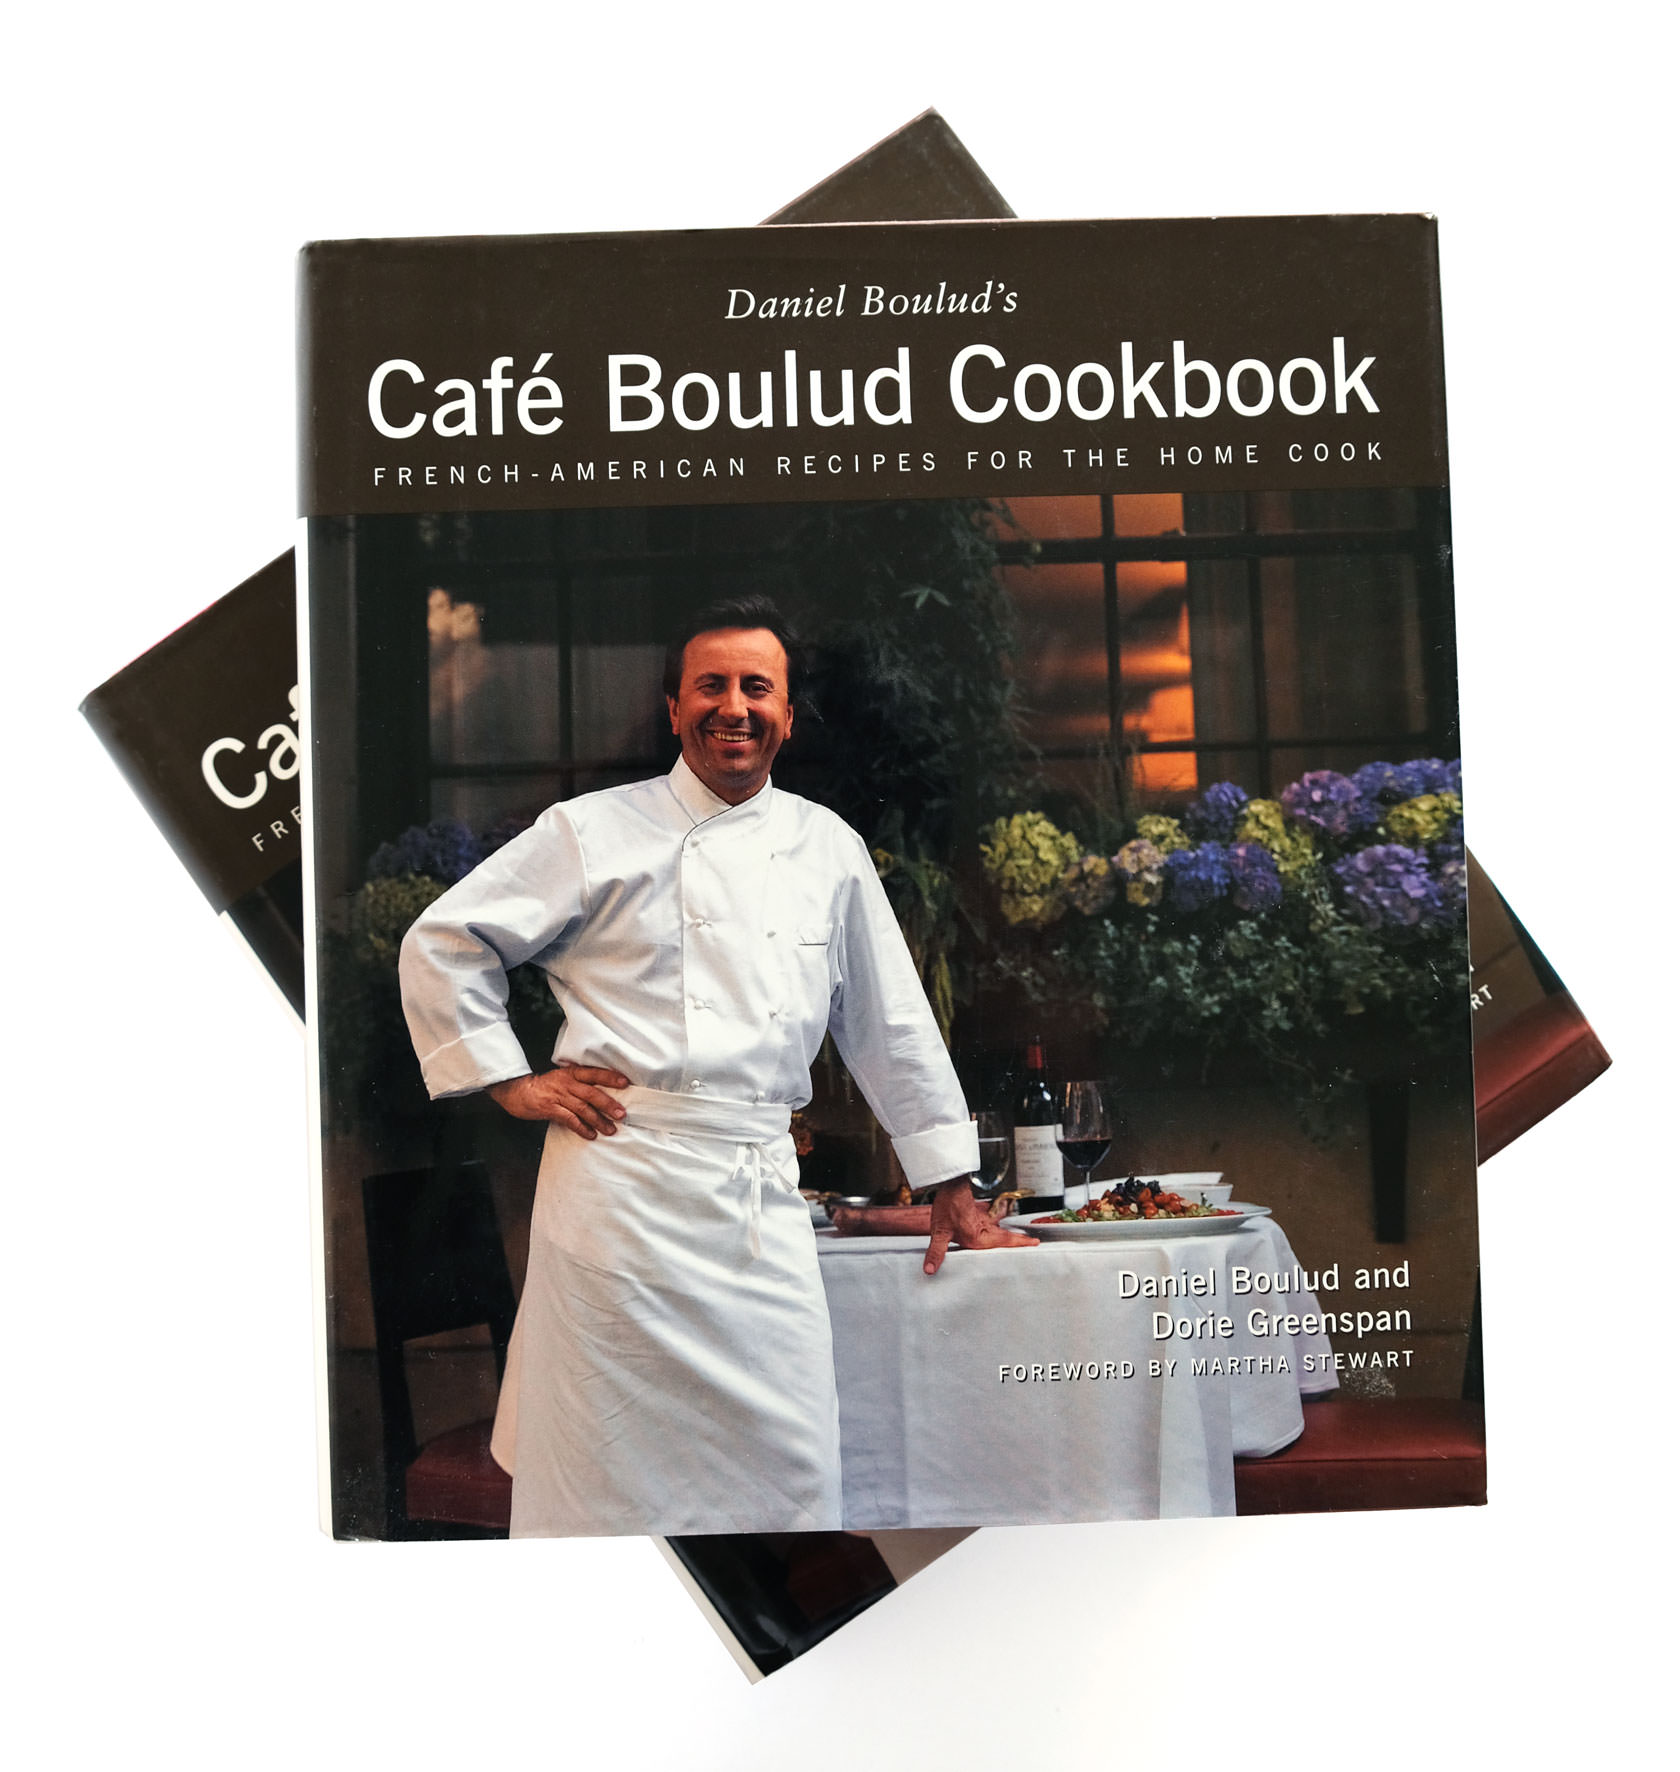 daniel-boulud-cafe-cookbook-cover